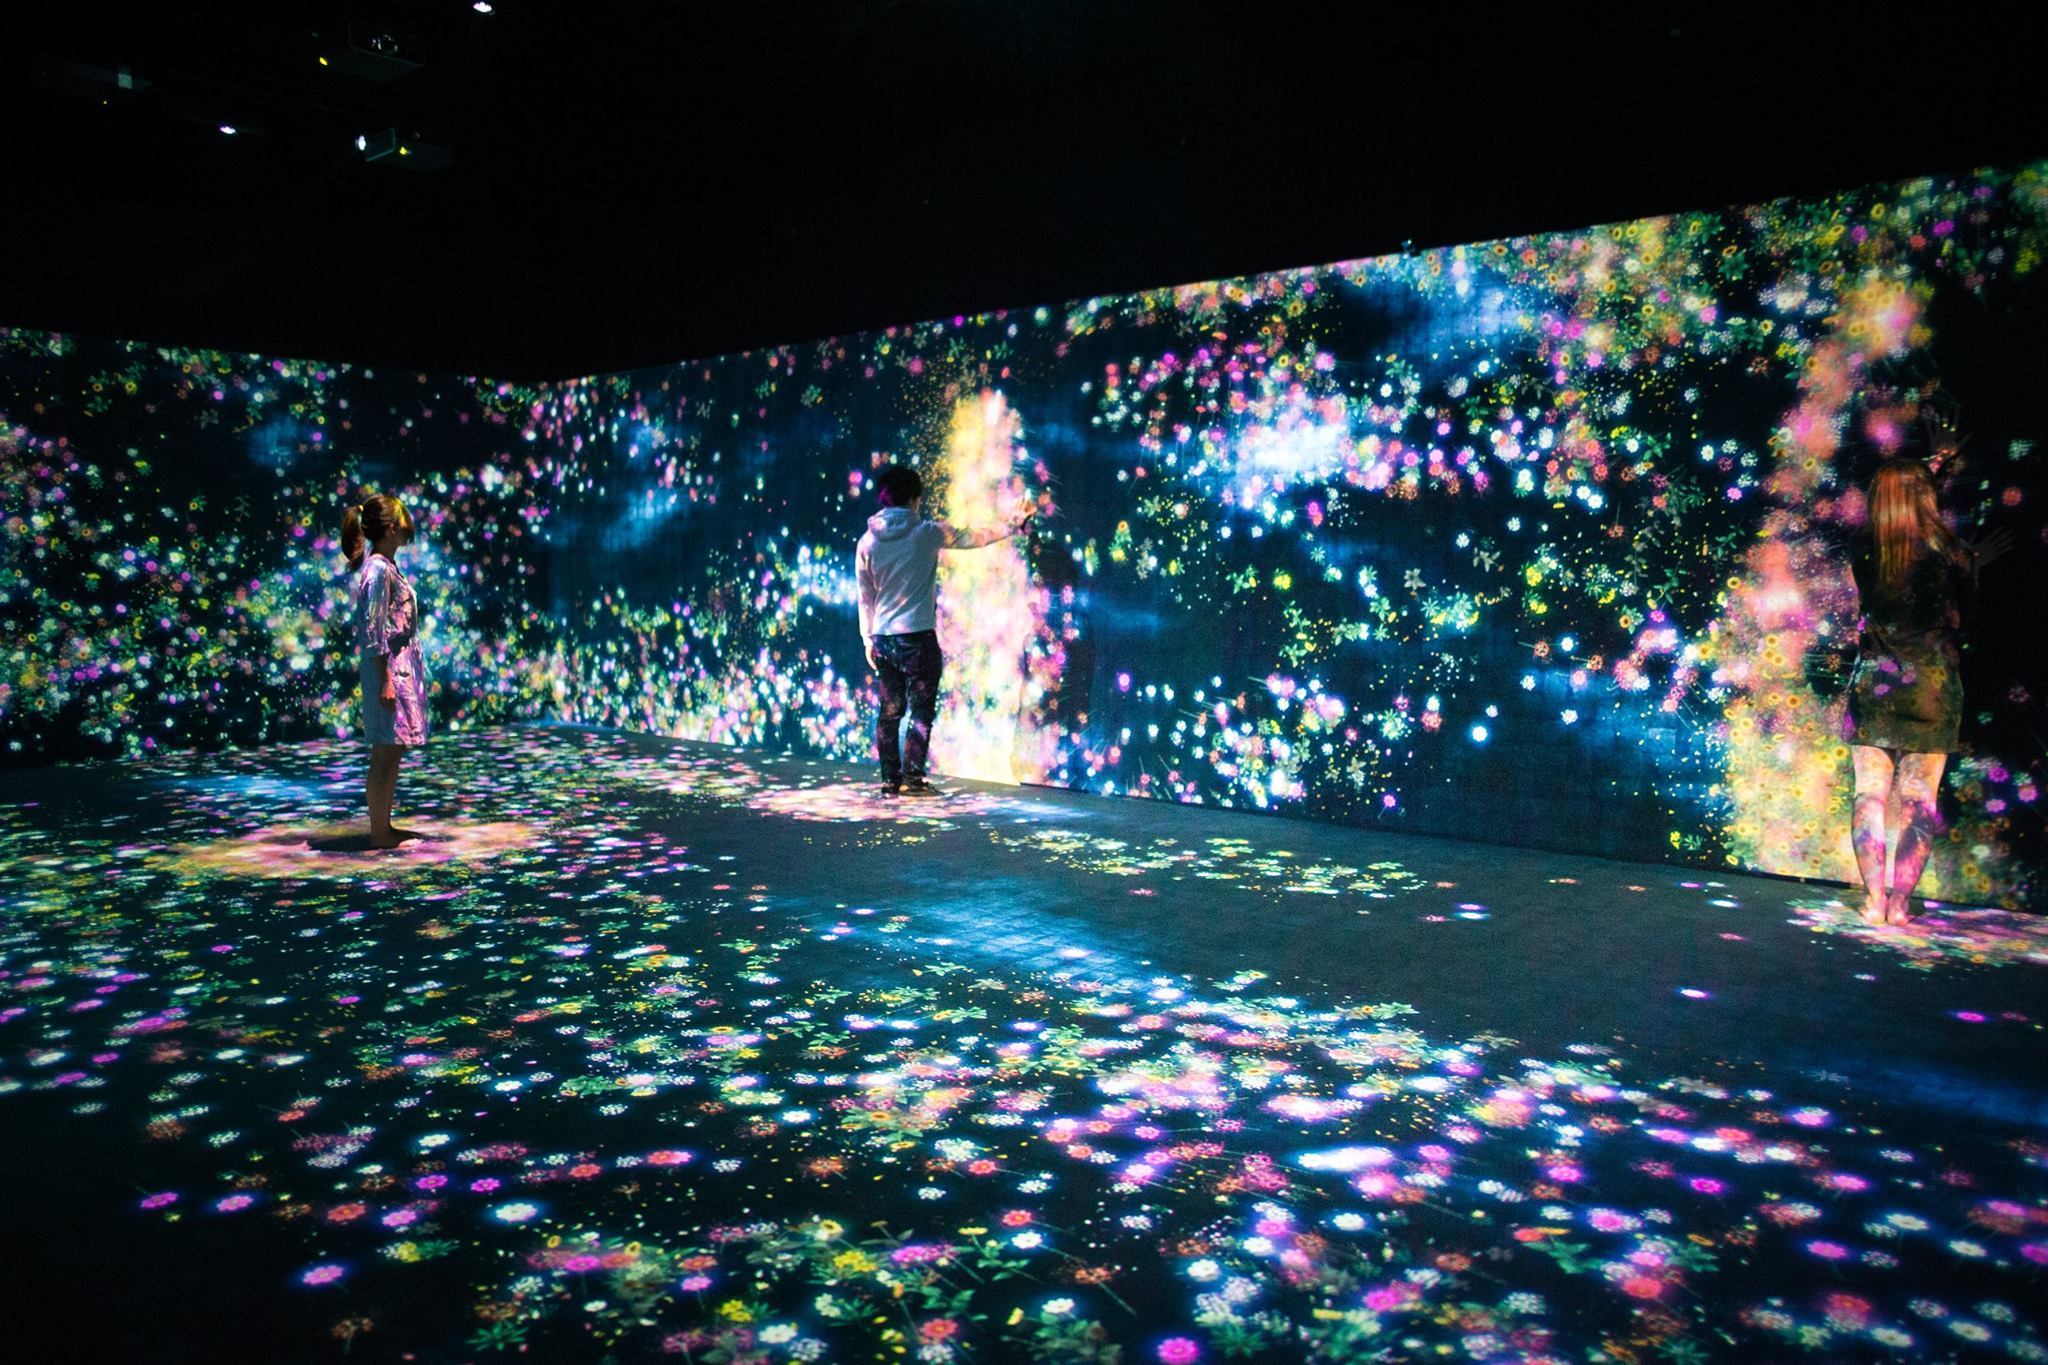 Courtesy of teamLab